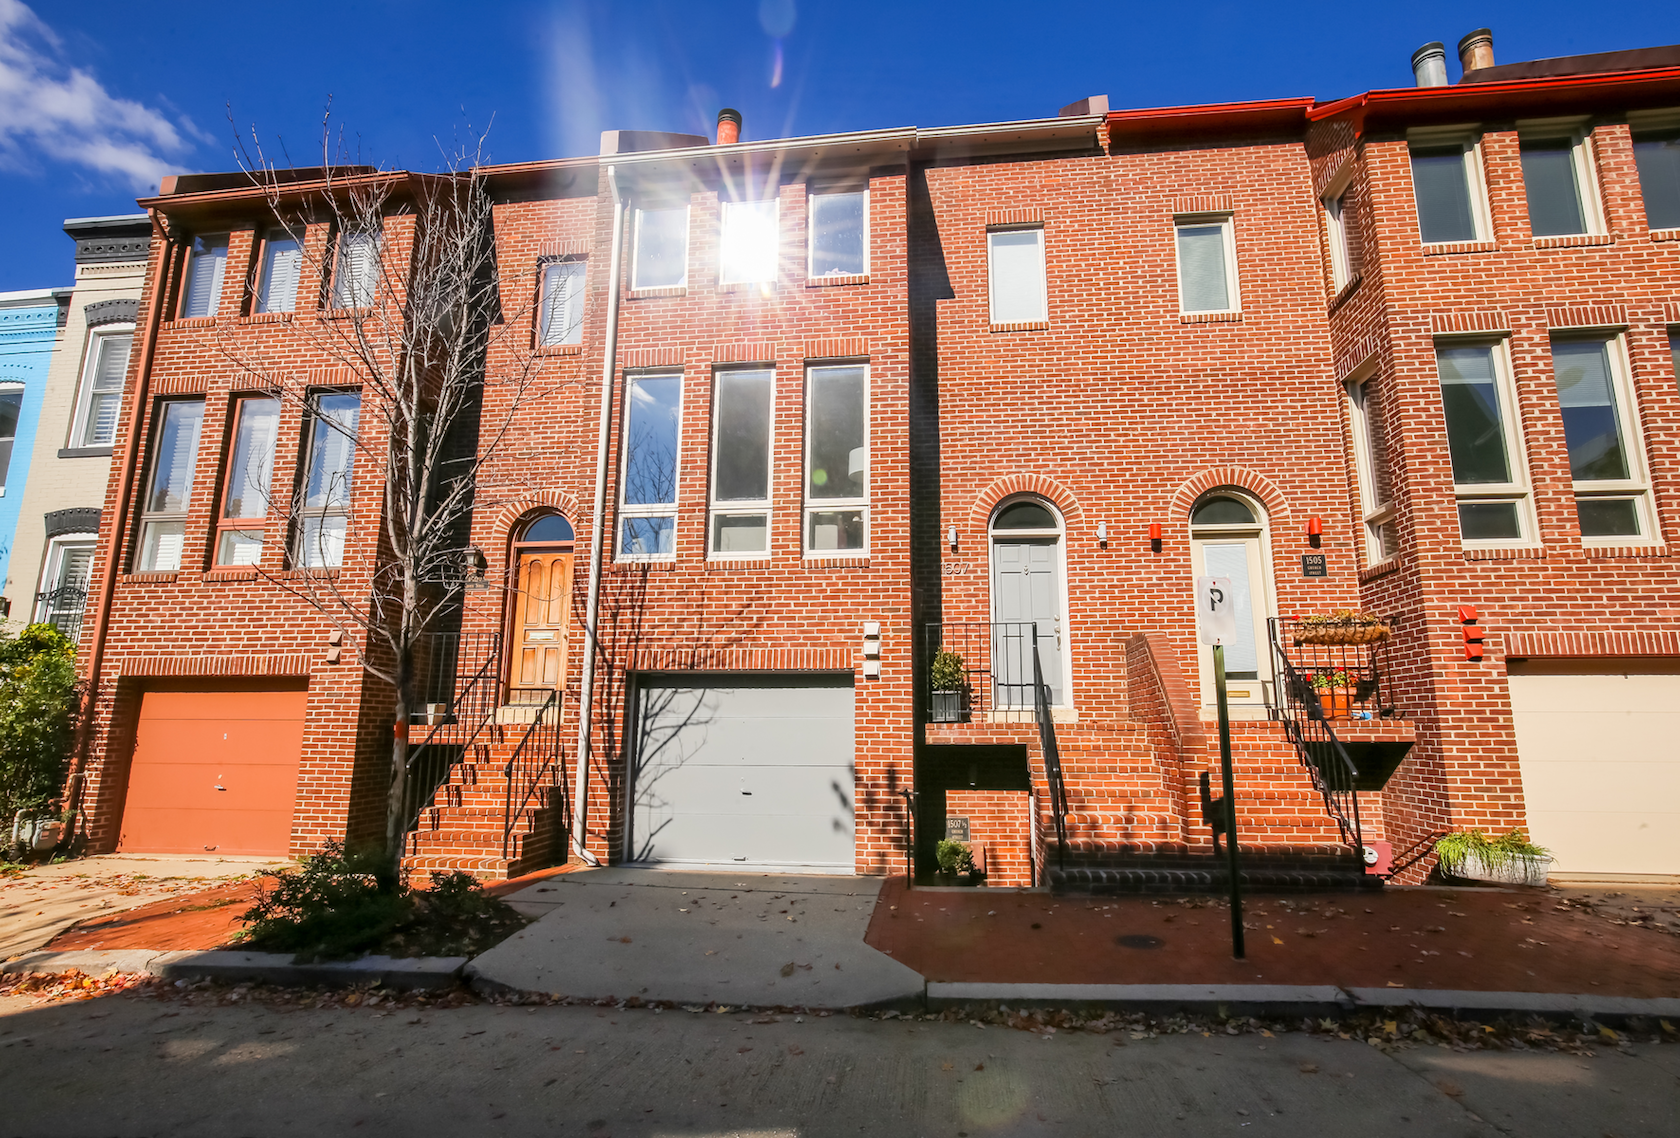 Townhouse for Sale at Logan Circle 1507 Church Street NW Washington, District Of Columbia, 20005 United States